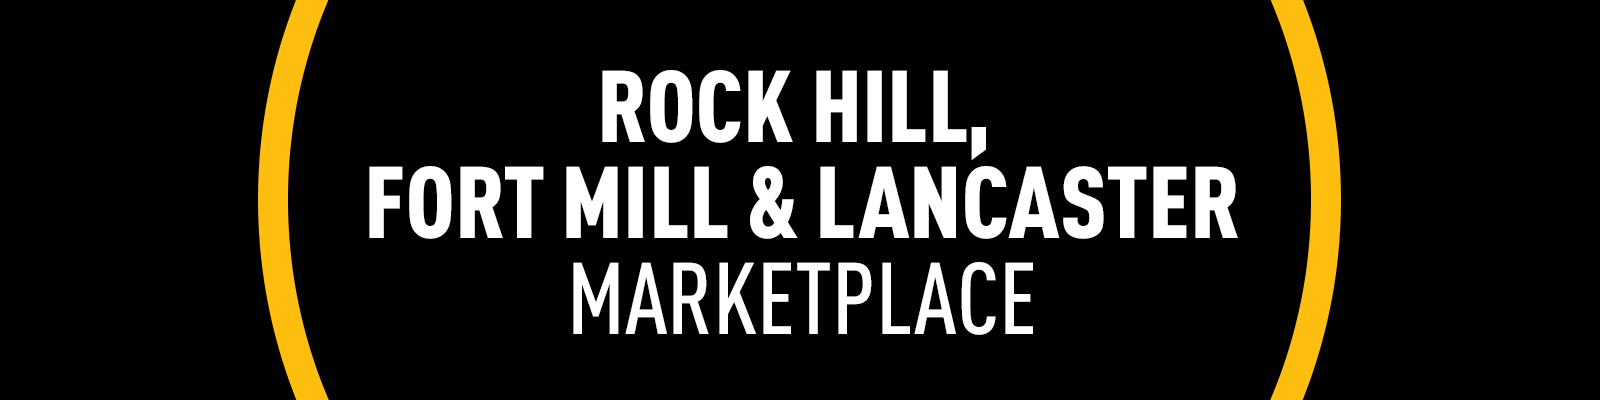 Rock Hill, Fort Mill & Lancaster Marketplace